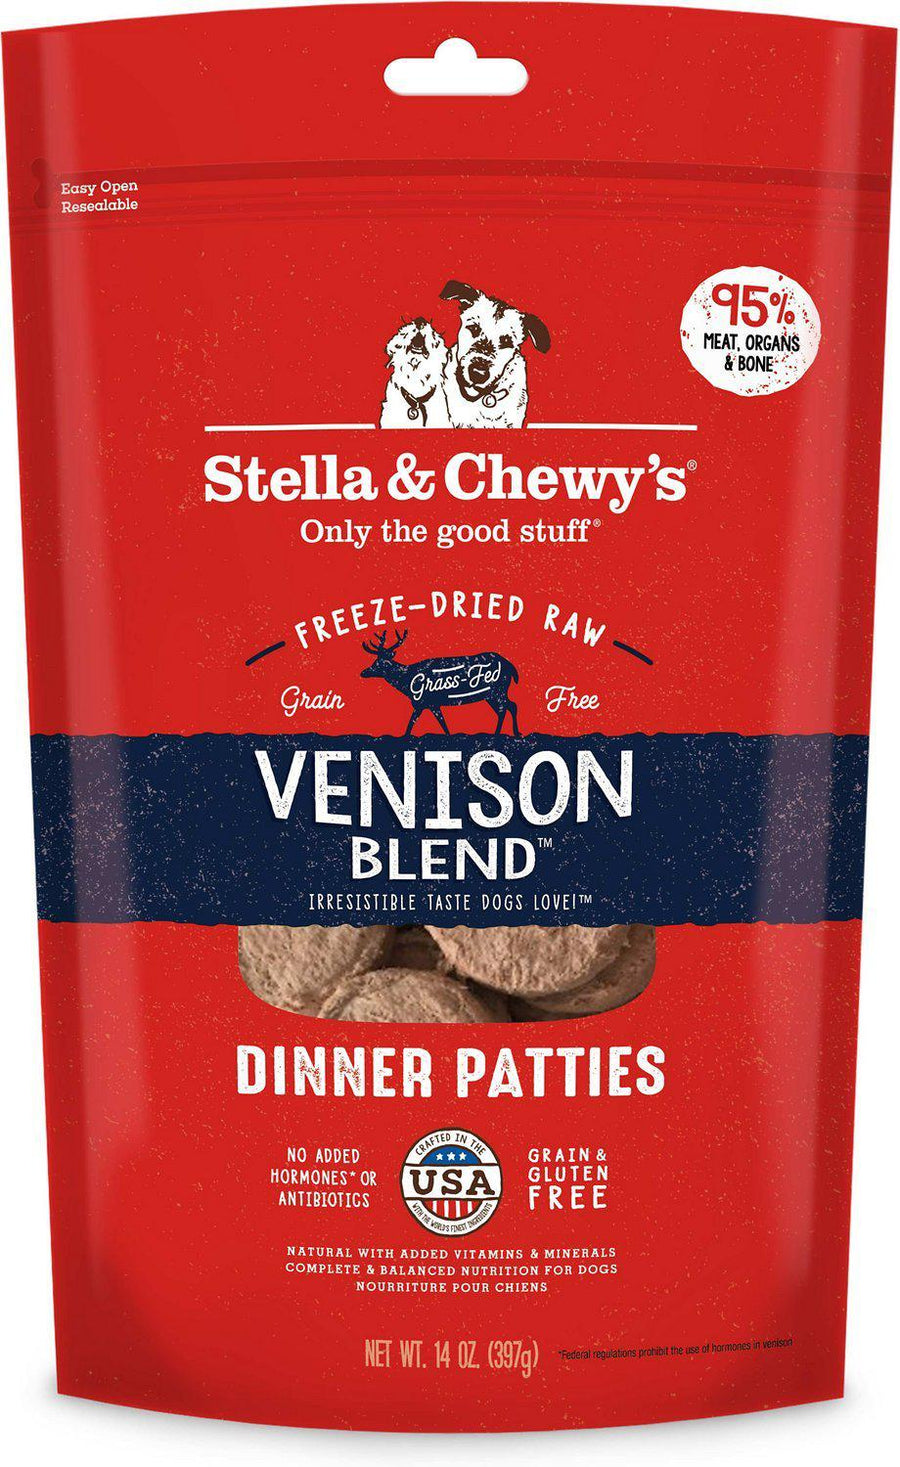 Stella & Chewy's Venison Blend Grain-Free Freeze-Dried Raw Dinner Patties Dog Food-Le Pup Pet Supplies and Grooming